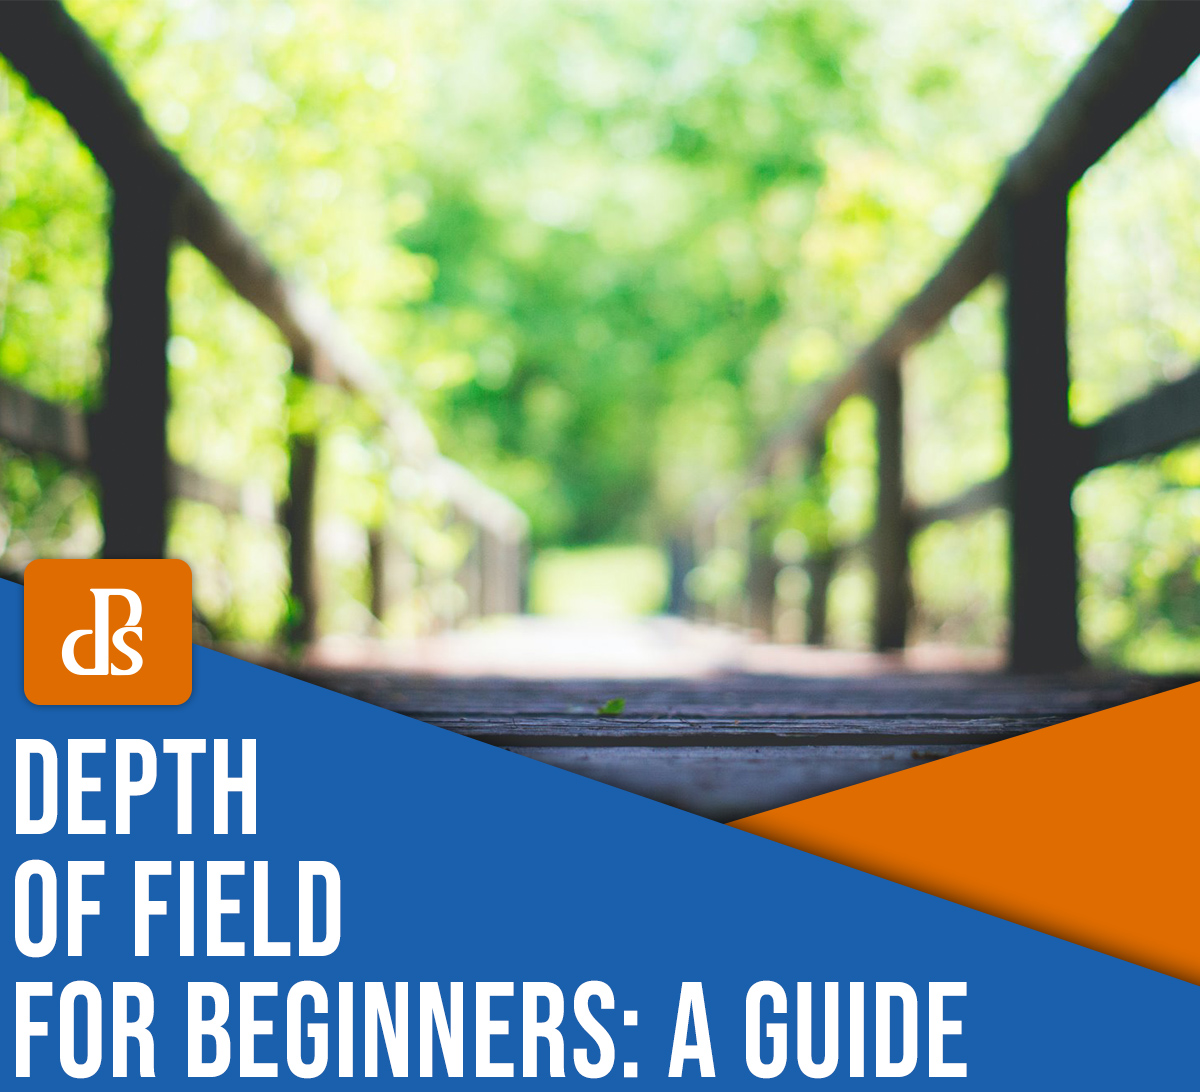 depth of field for beginners: a guide